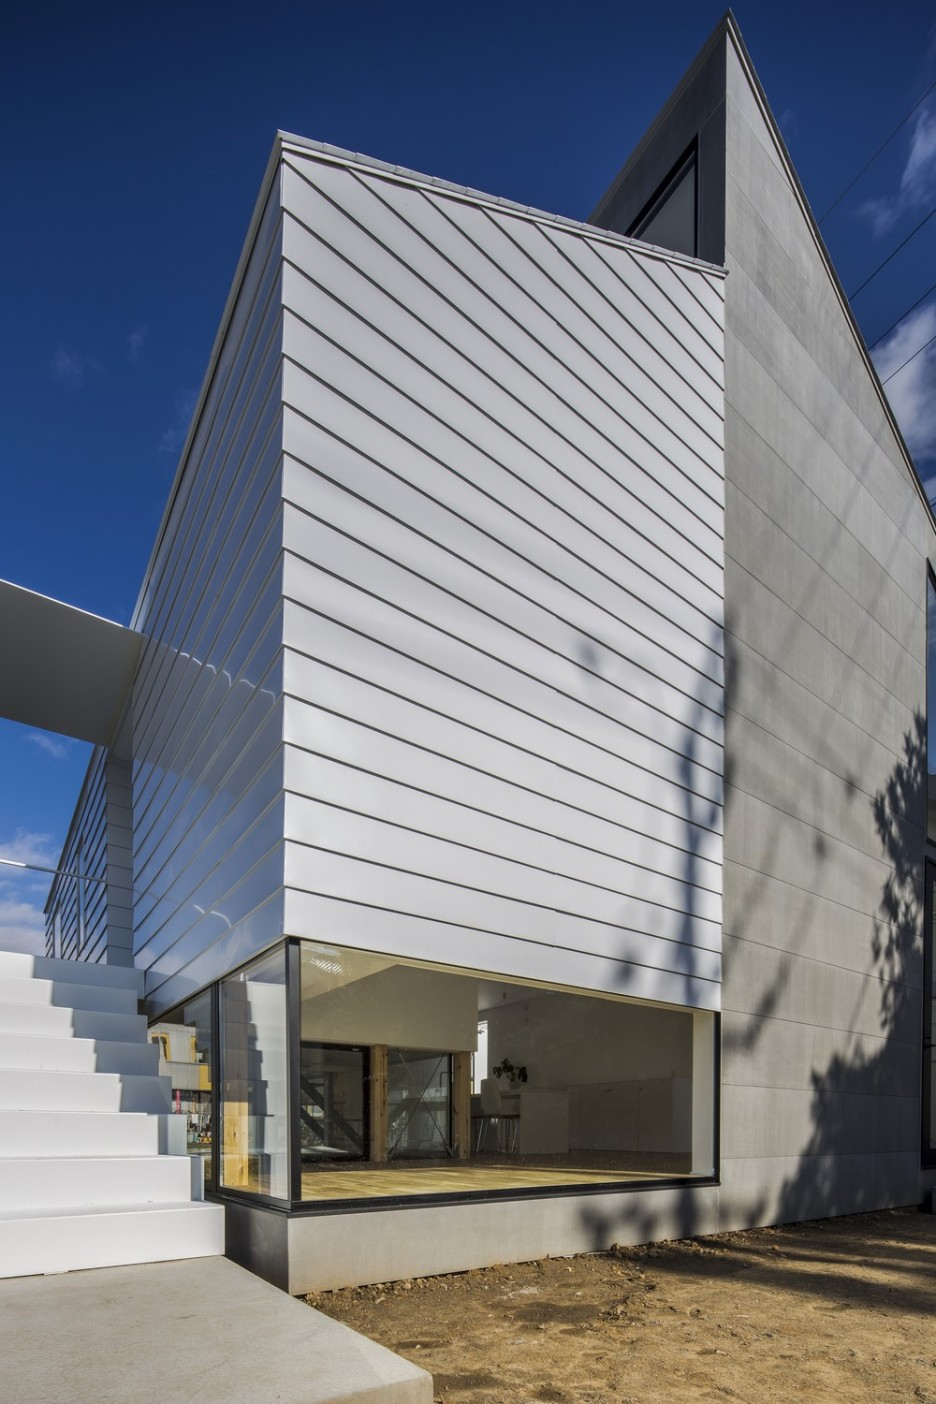 Modern Japanese Architecture Home Gives Inspiring Design Idea: Powerful Kawate Residence Home Design Exterior Used Contemporary Decoration With  Grey Wall And Glass Sliding Door Design Ideas